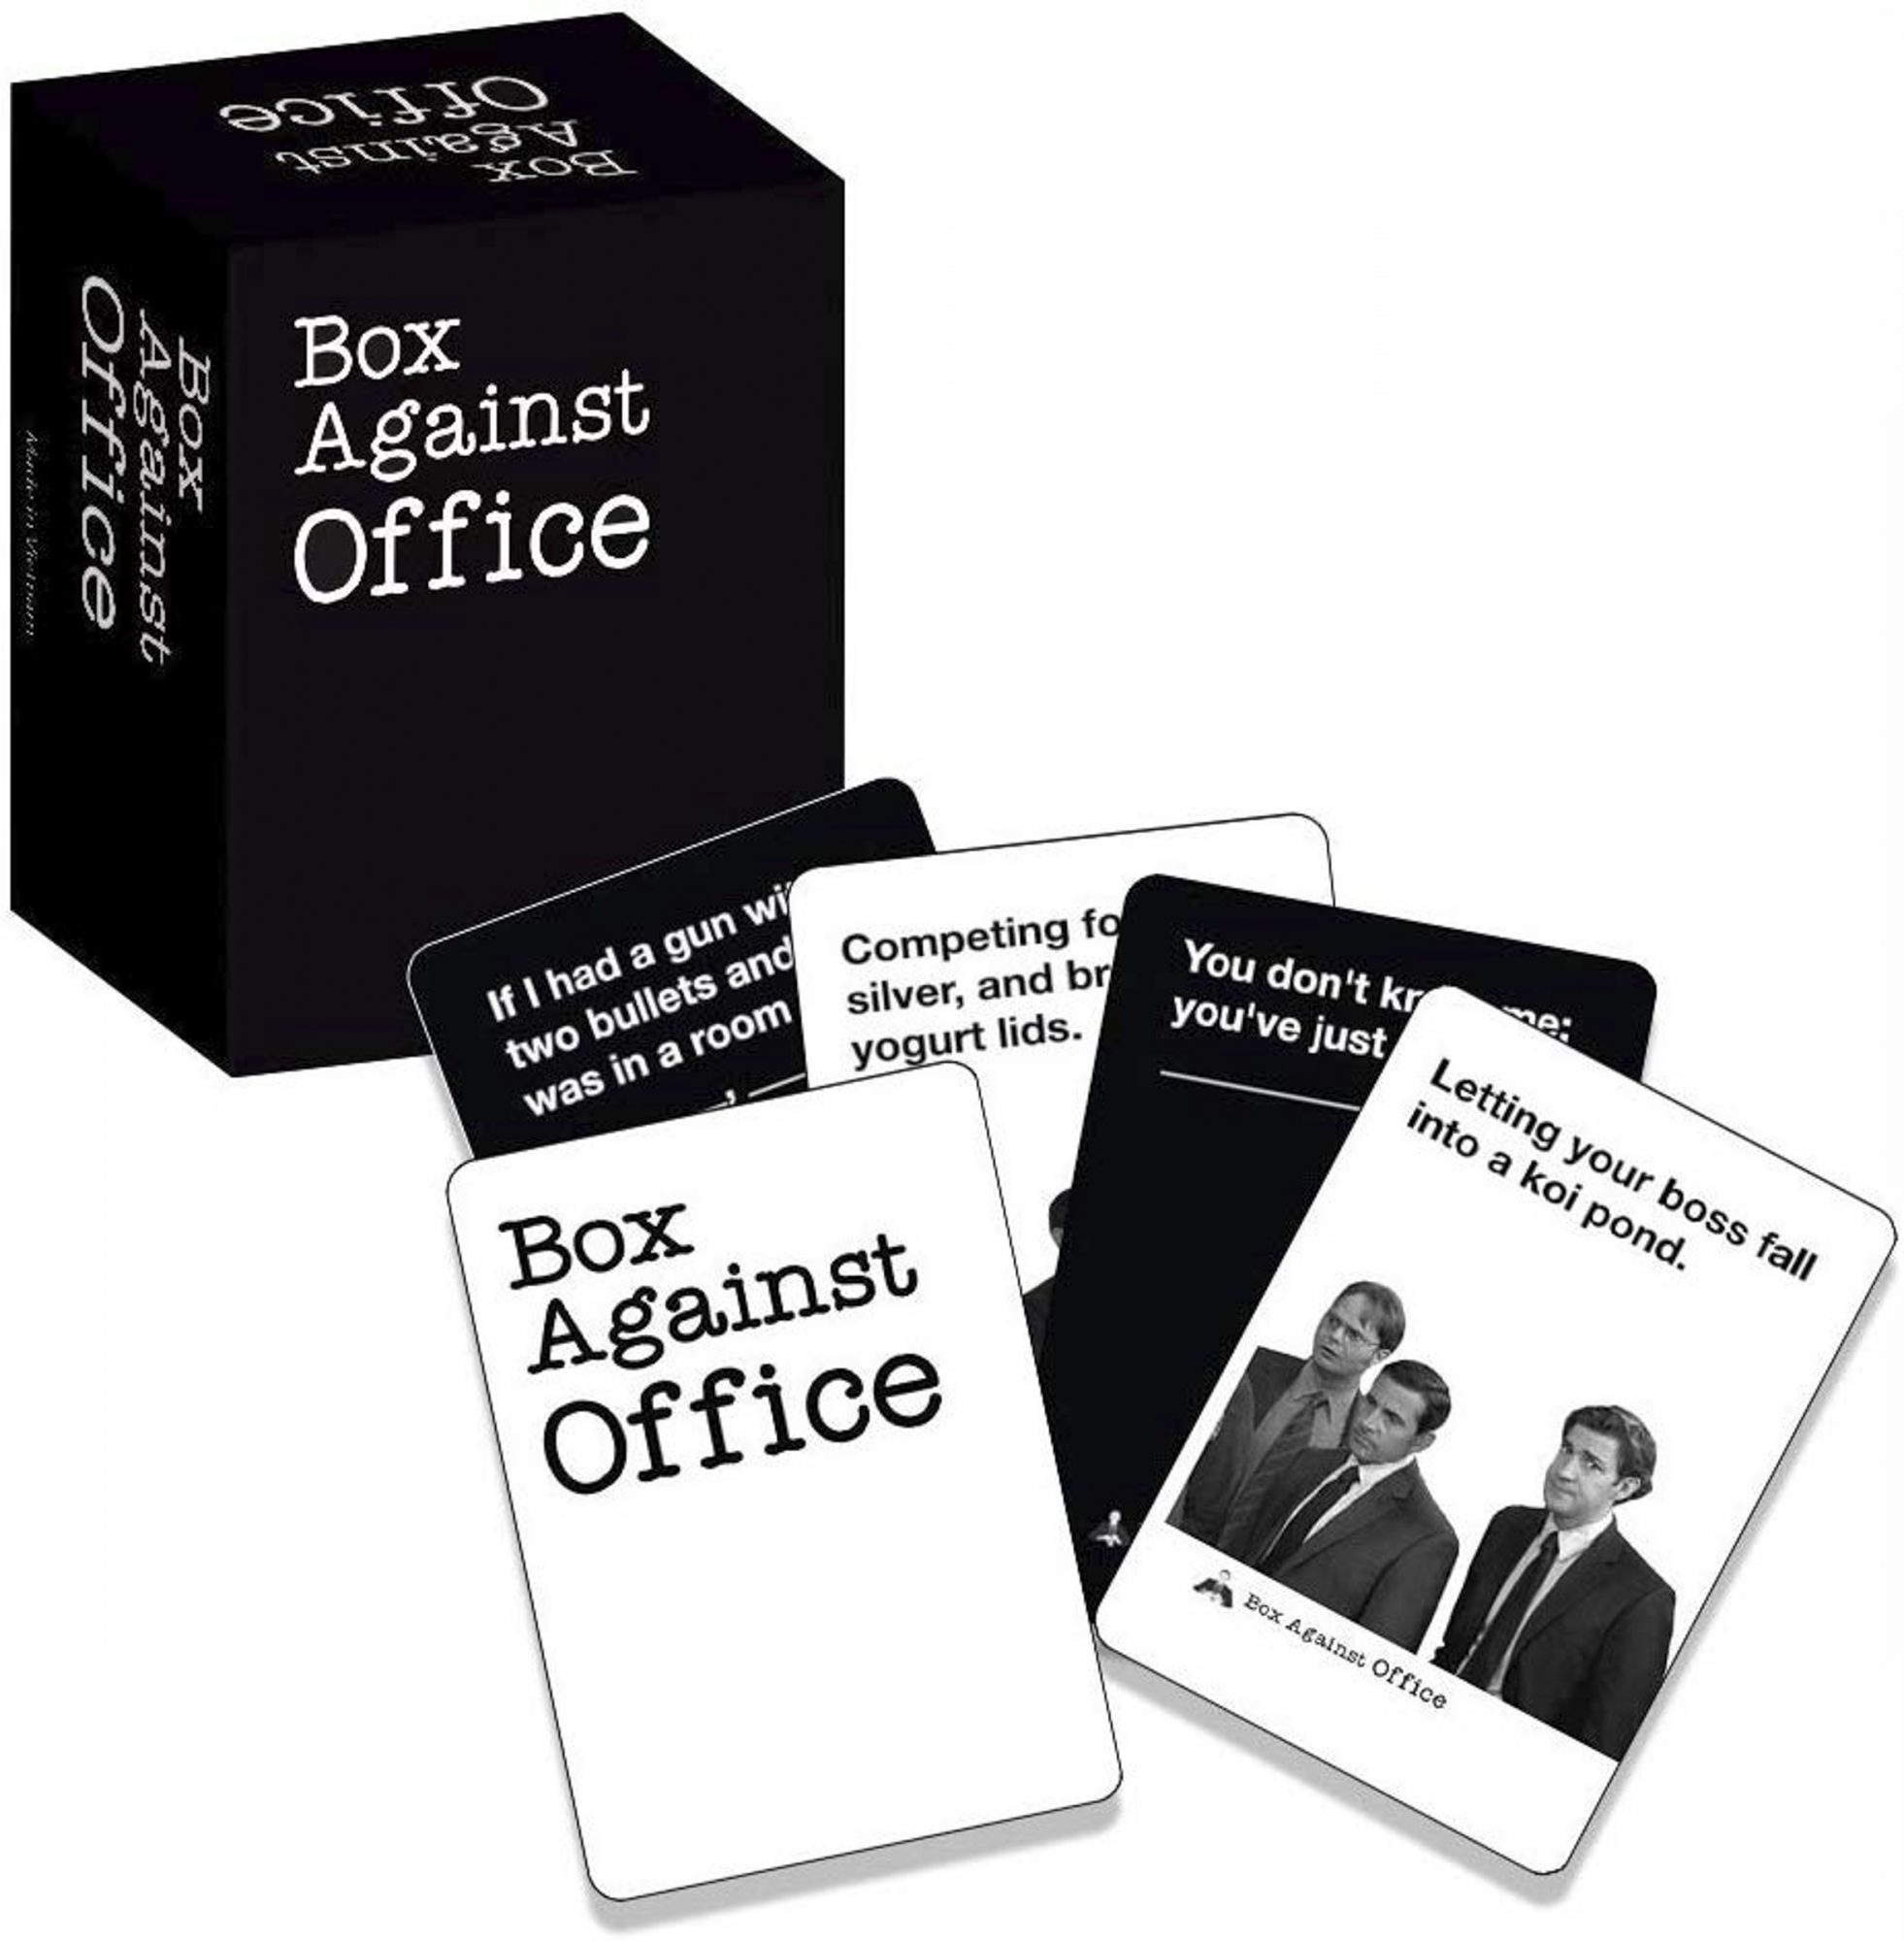 cards-against-humanity-03.jpg